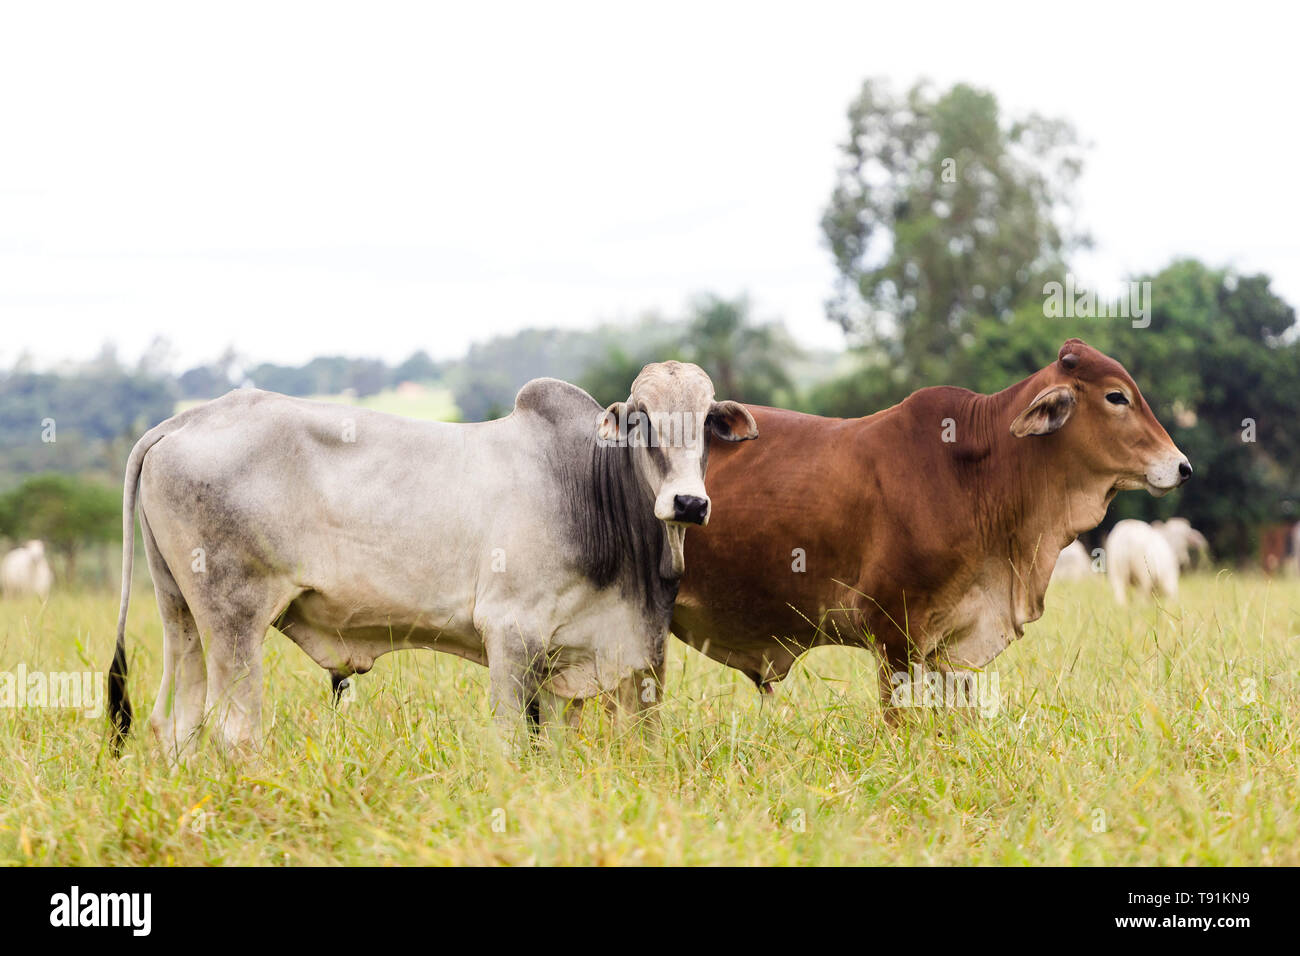 May 14, 2019 - GlÌ?Ria De Dourados, Mato Grosso do Sul, Brazil - Cattle seen on a farm in Brazil.Livestock farming has a great relevance in Brazilian exports, in addition to supplying the domestic market. It is an economic activity developed in rural areas.Agriculture in Brazil is one of the main bases of the country's economy. Agriculture is an activity that is part of the primary sector where the land is cultivated and harvested for subsistence, export or trade. Credit: Rafael Henrique/SOPA Images/ZUMA Wire/Alamy Live News Stock Photo